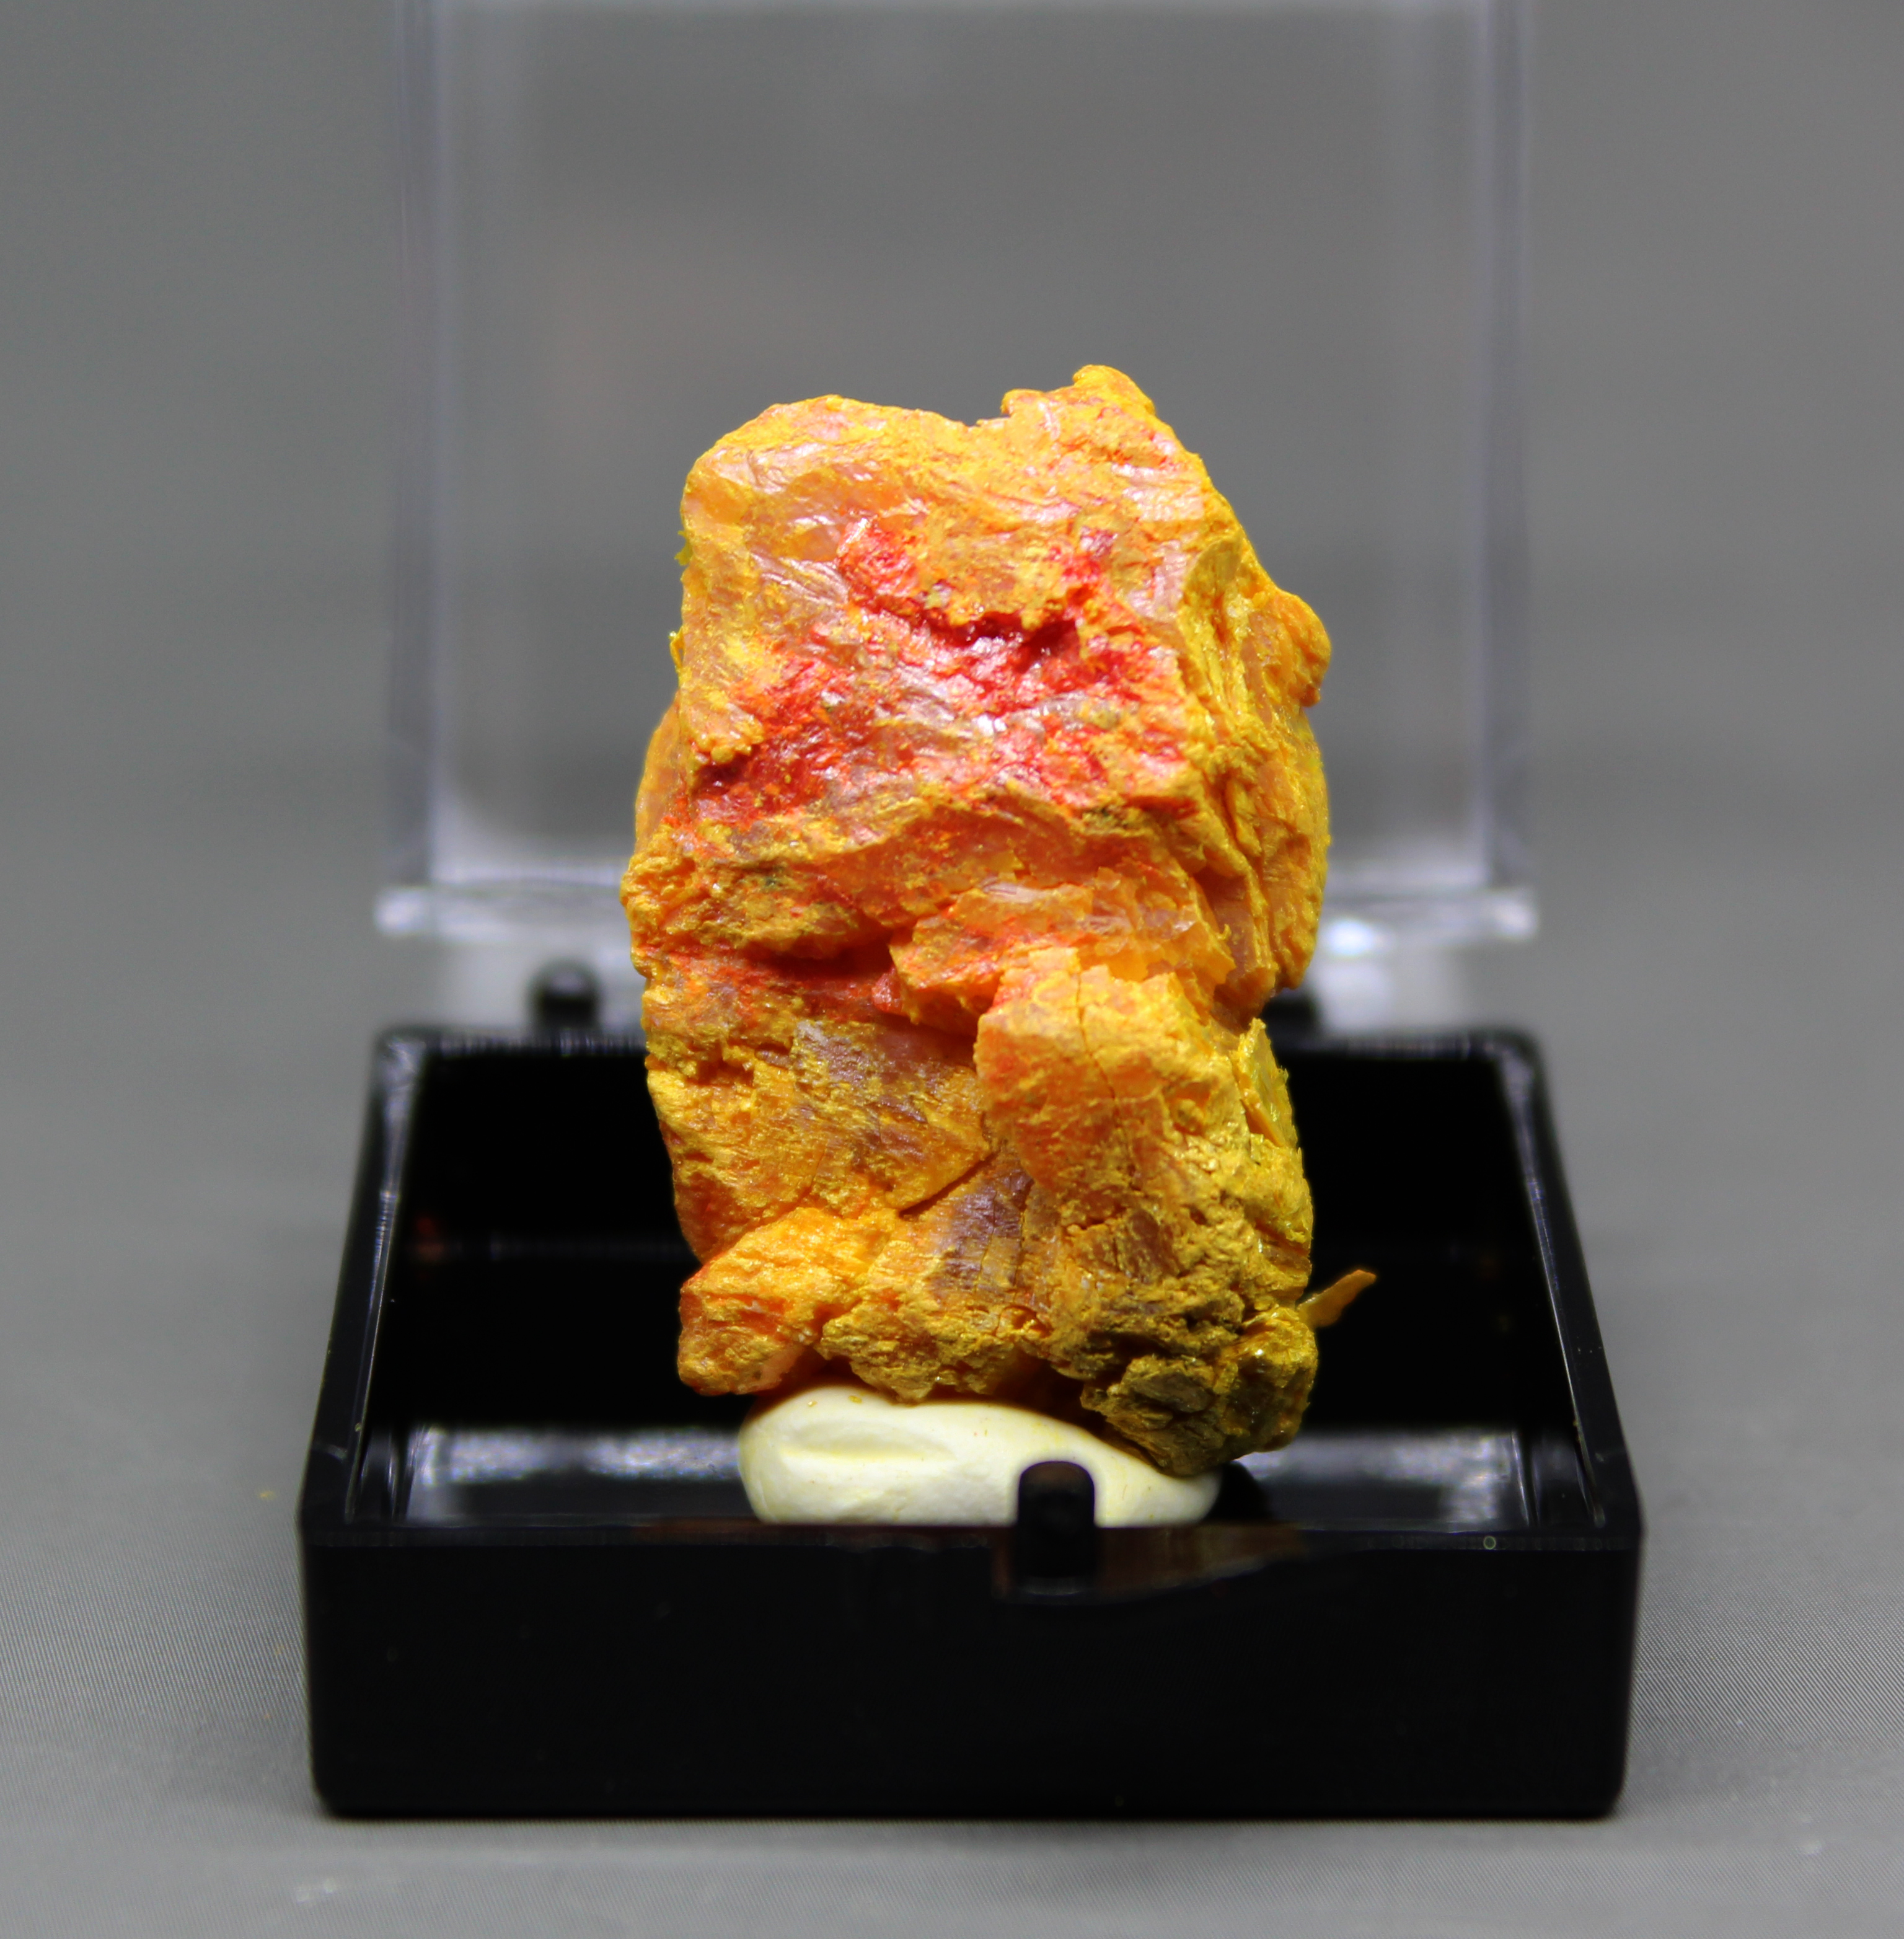 100% Natural Orpiment Mineral Specimens Arsenic Sulphide Ore Crystal Mineral Ore Orpimentcollection Specimens Send Box